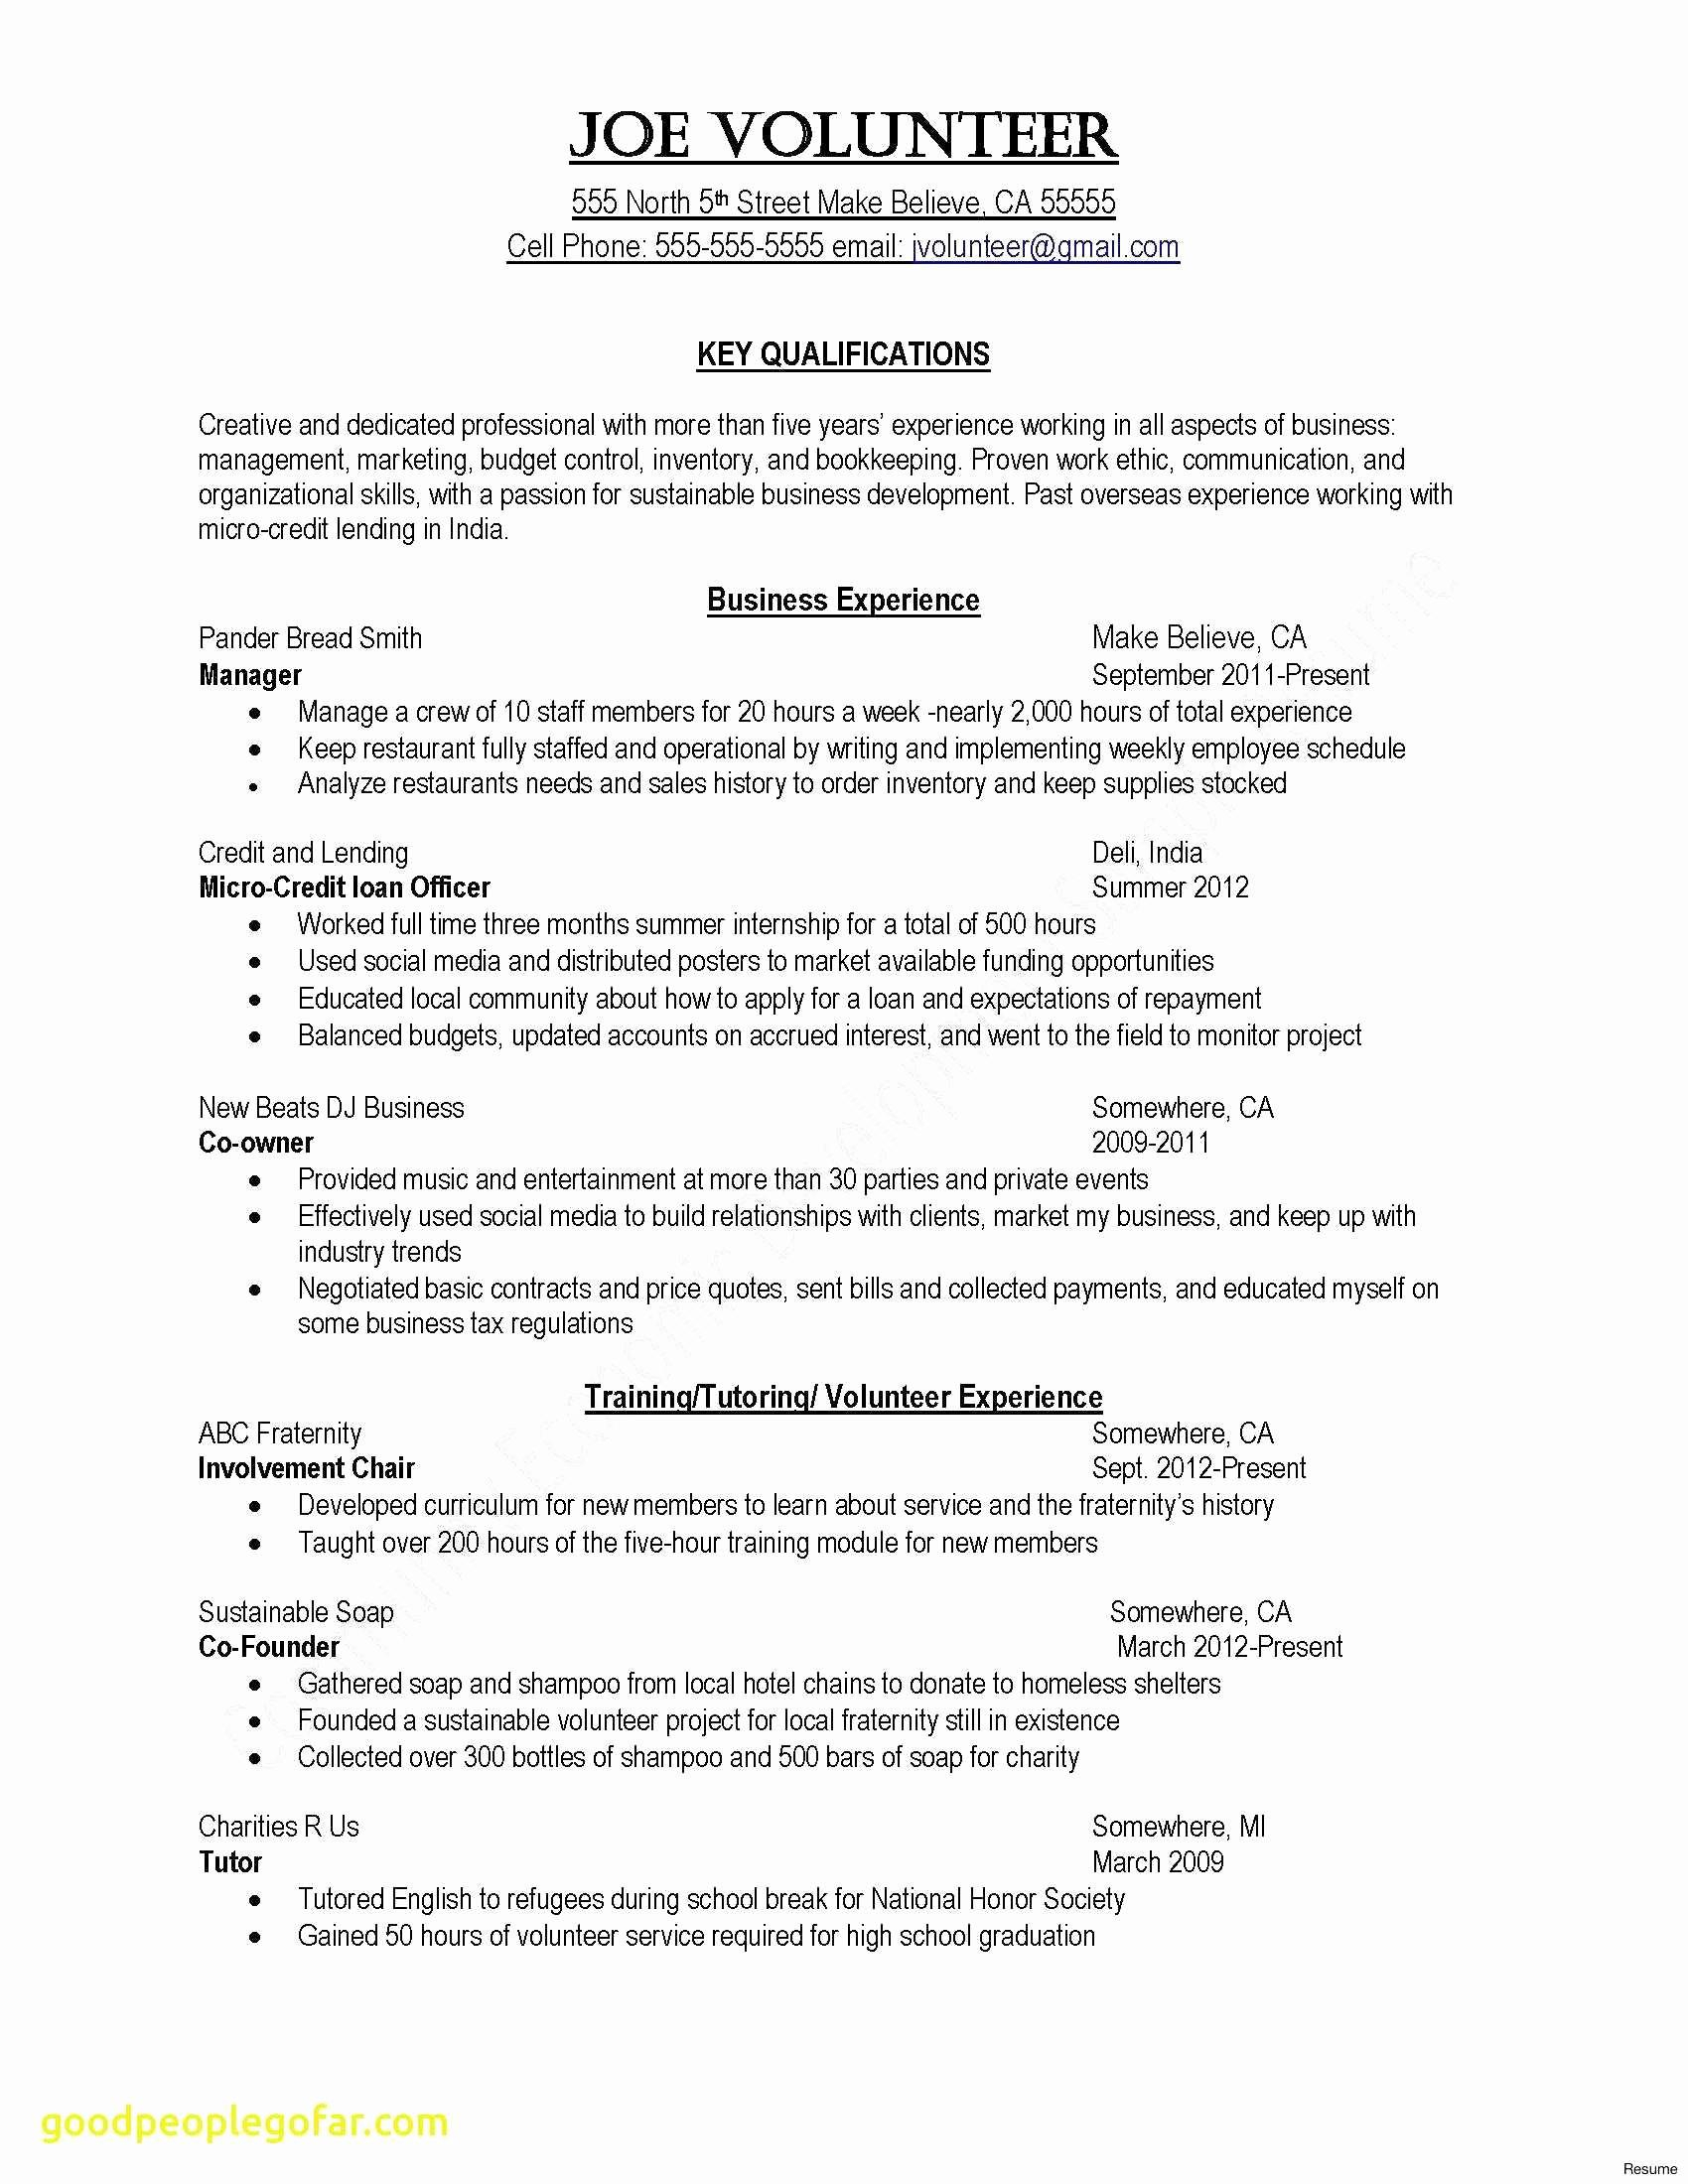 Sales Rep Job Description for Resume - College Application Cover Letter Template Collection